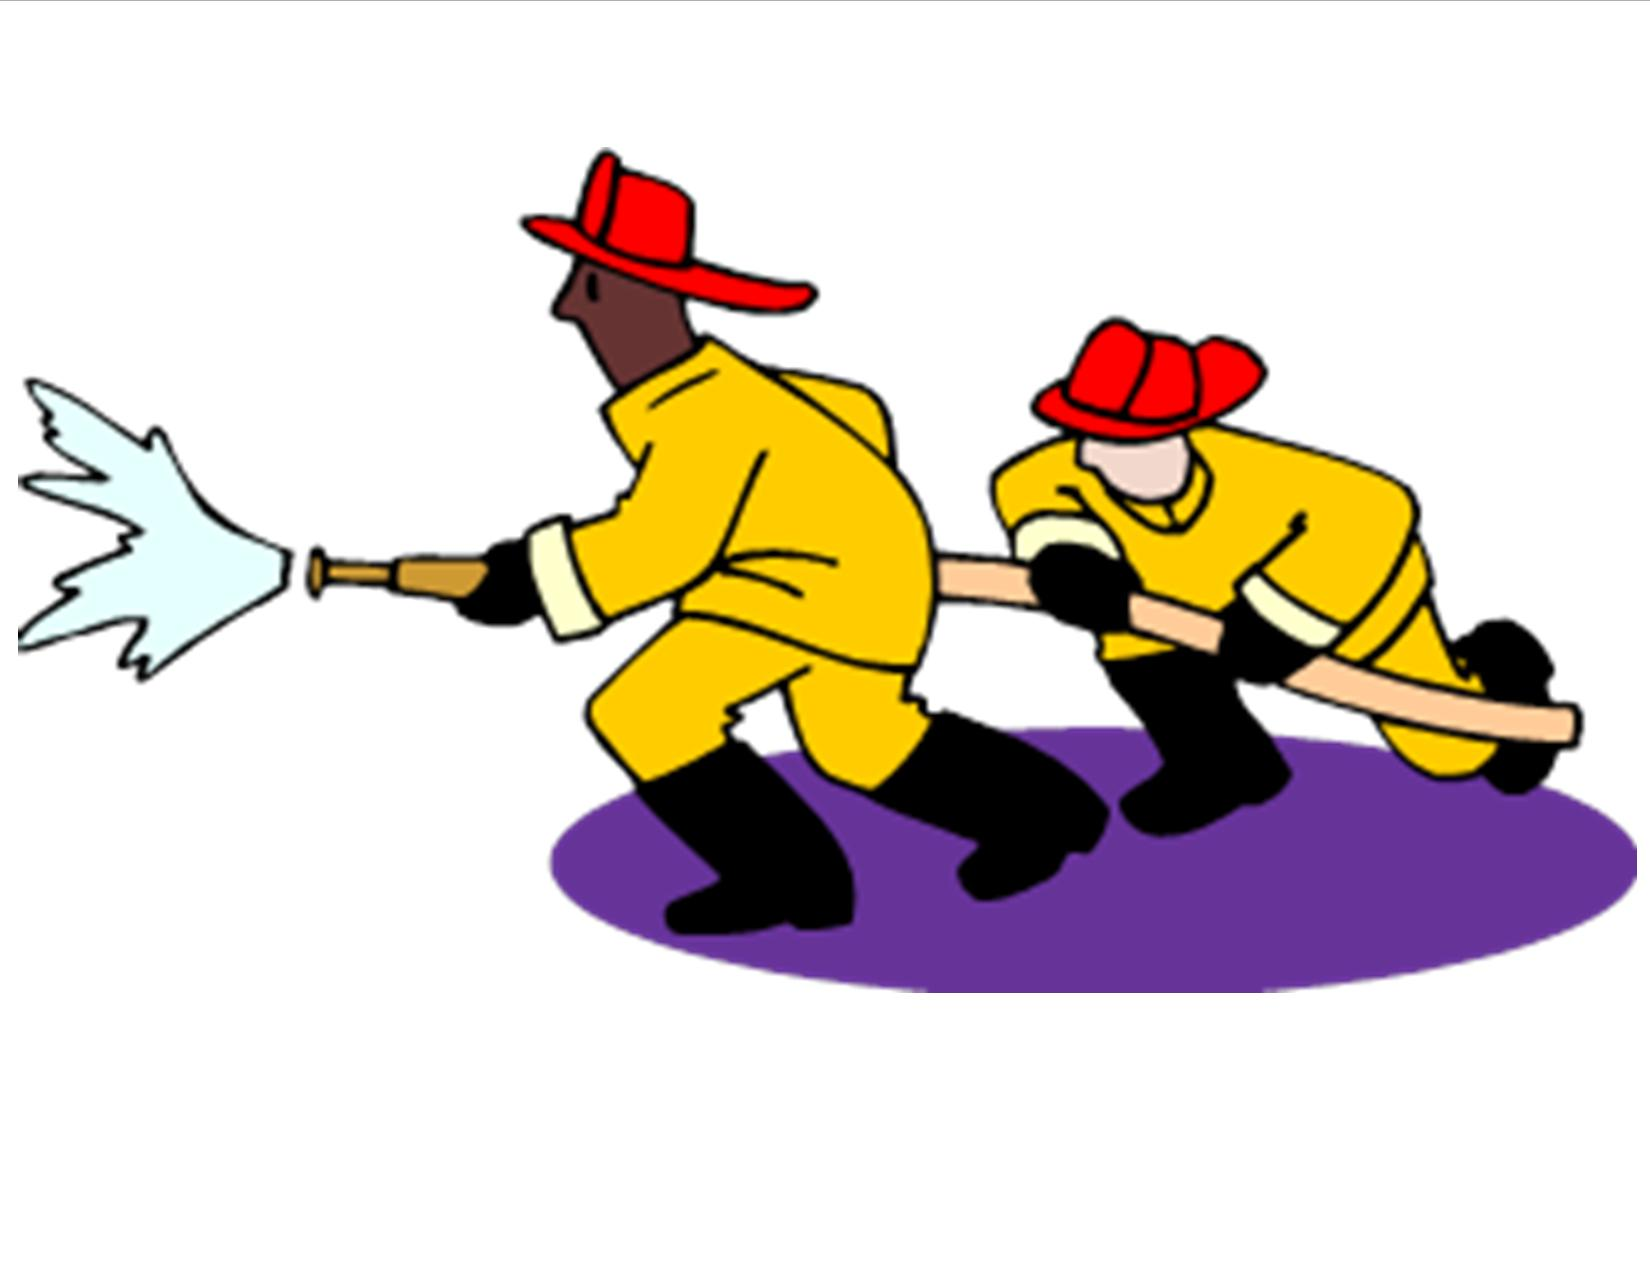 Firefighter clipart fire fighter. Free cliparts download clip